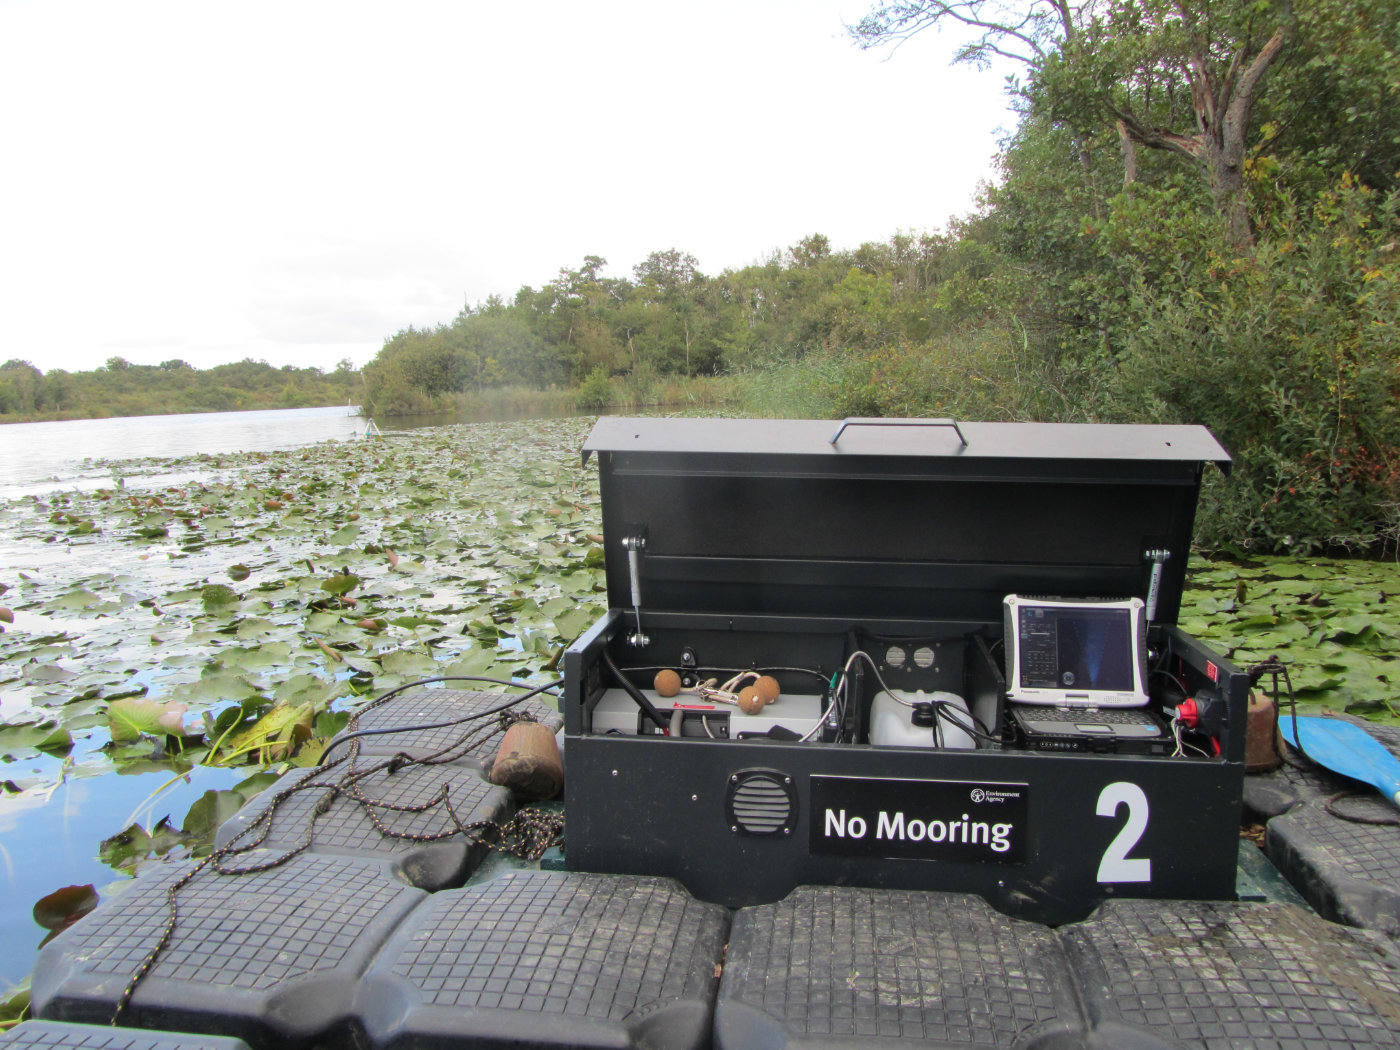 conservation equipment on a jetty next to water covered in lily pads